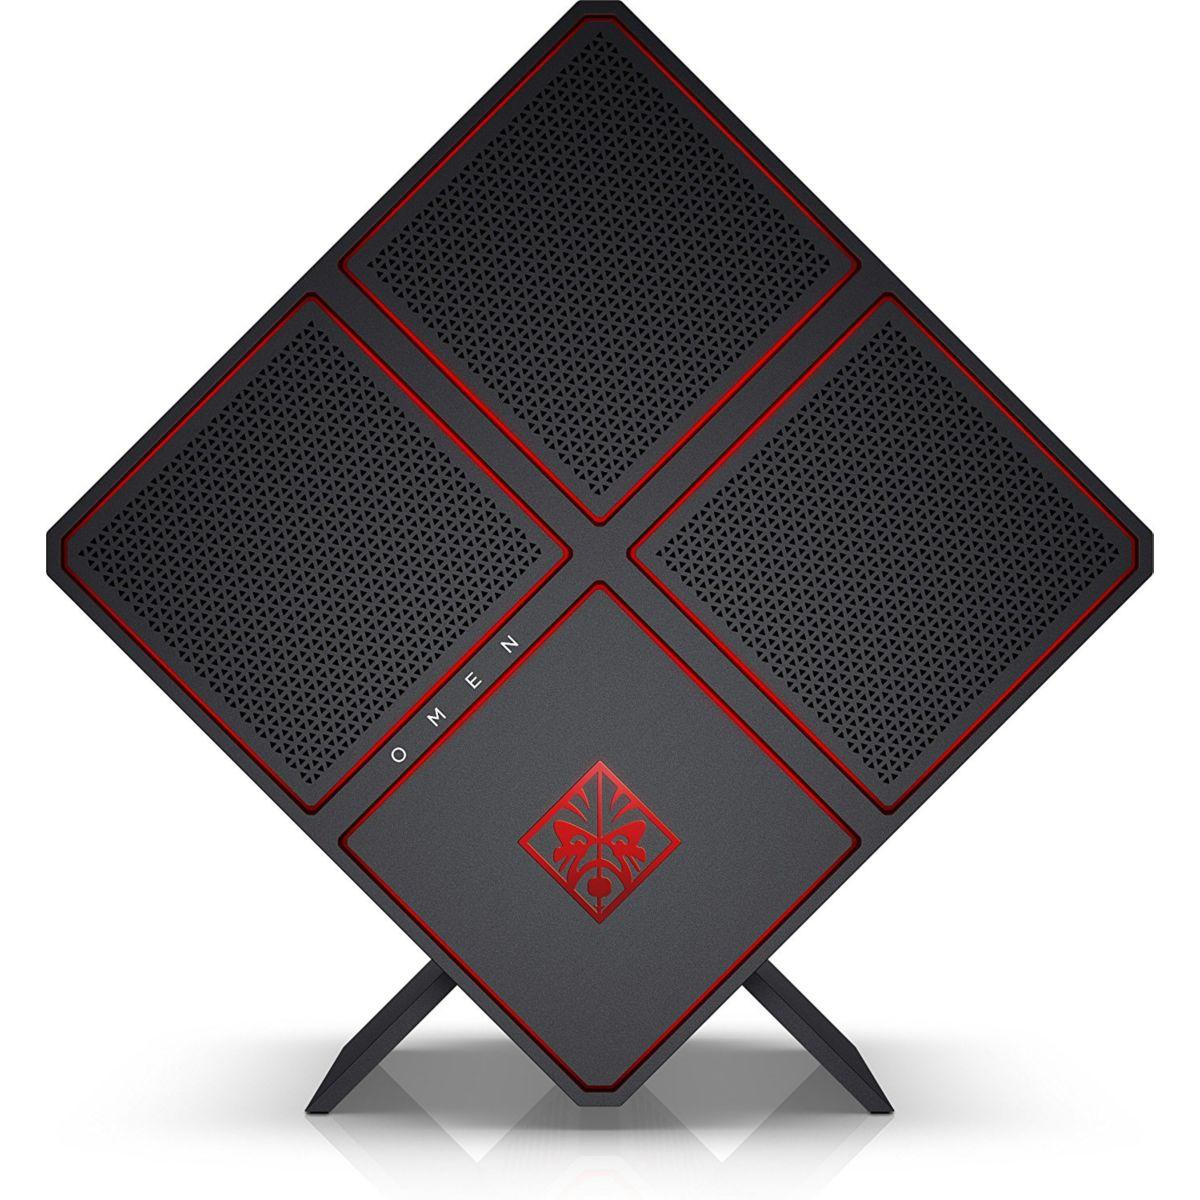 Pc gamer hp omen 900-203nf (photo)